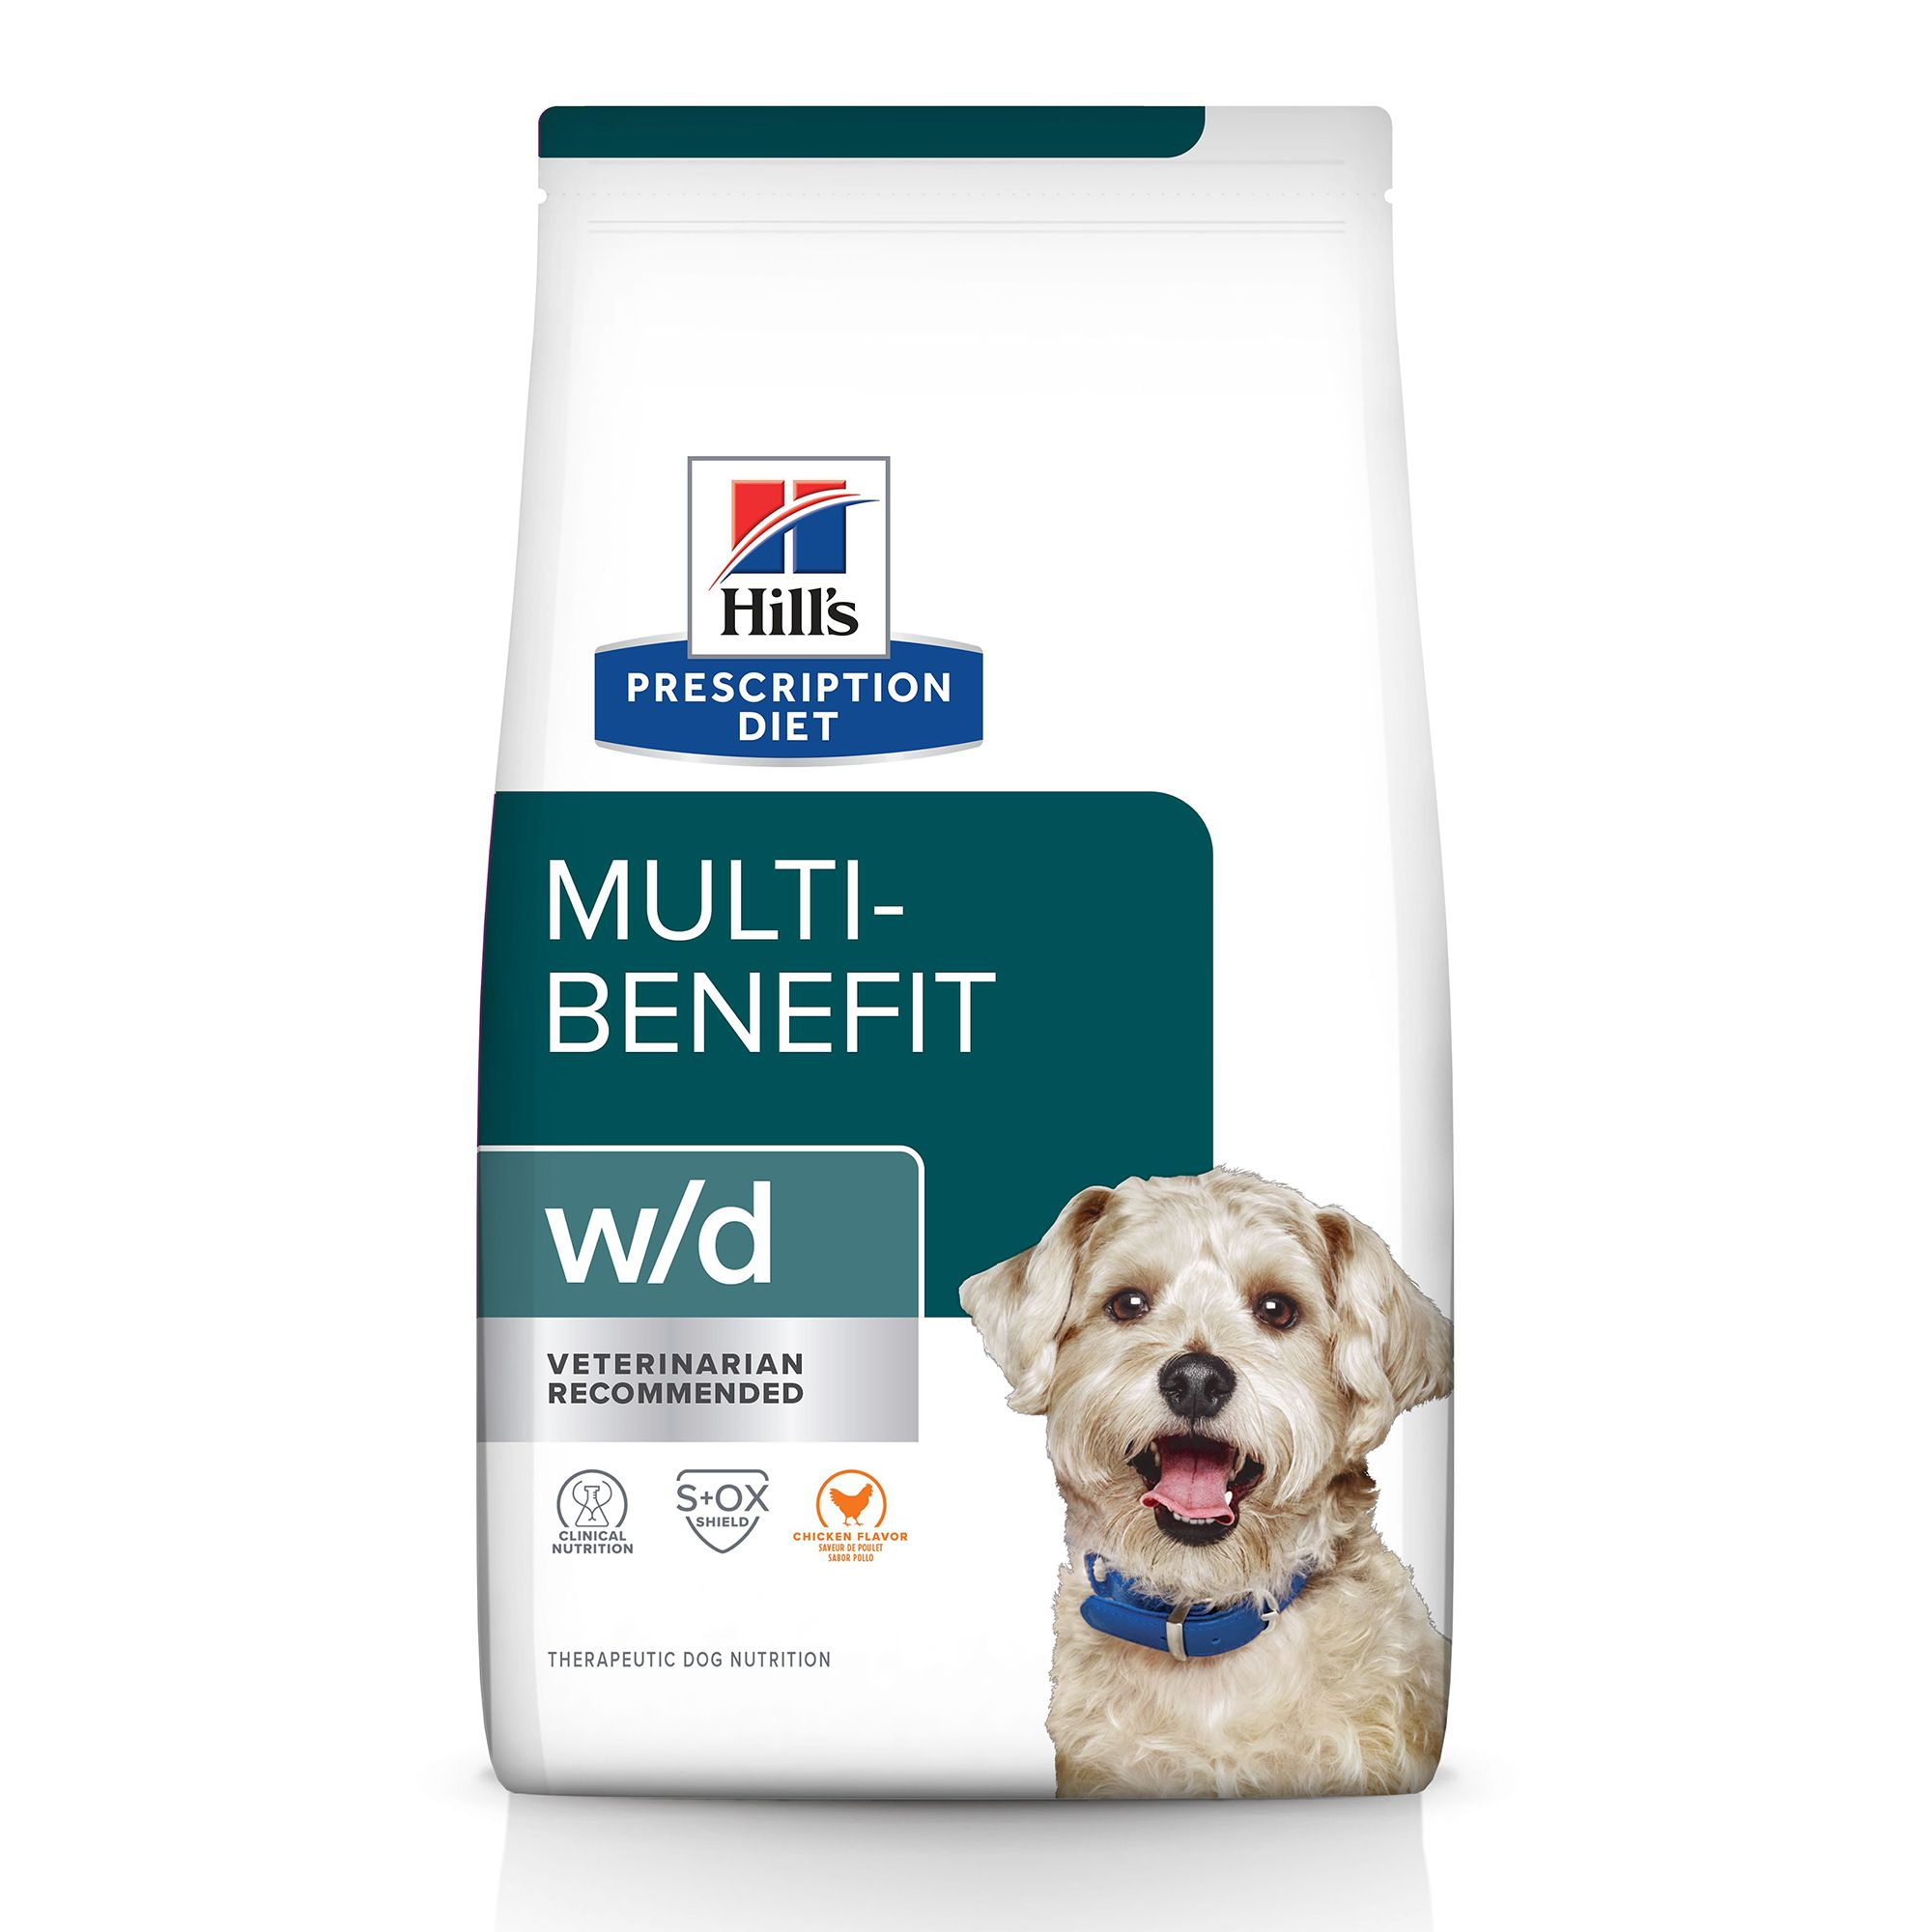 Dog Supplies: Dog & Puppy Products | PetSmart